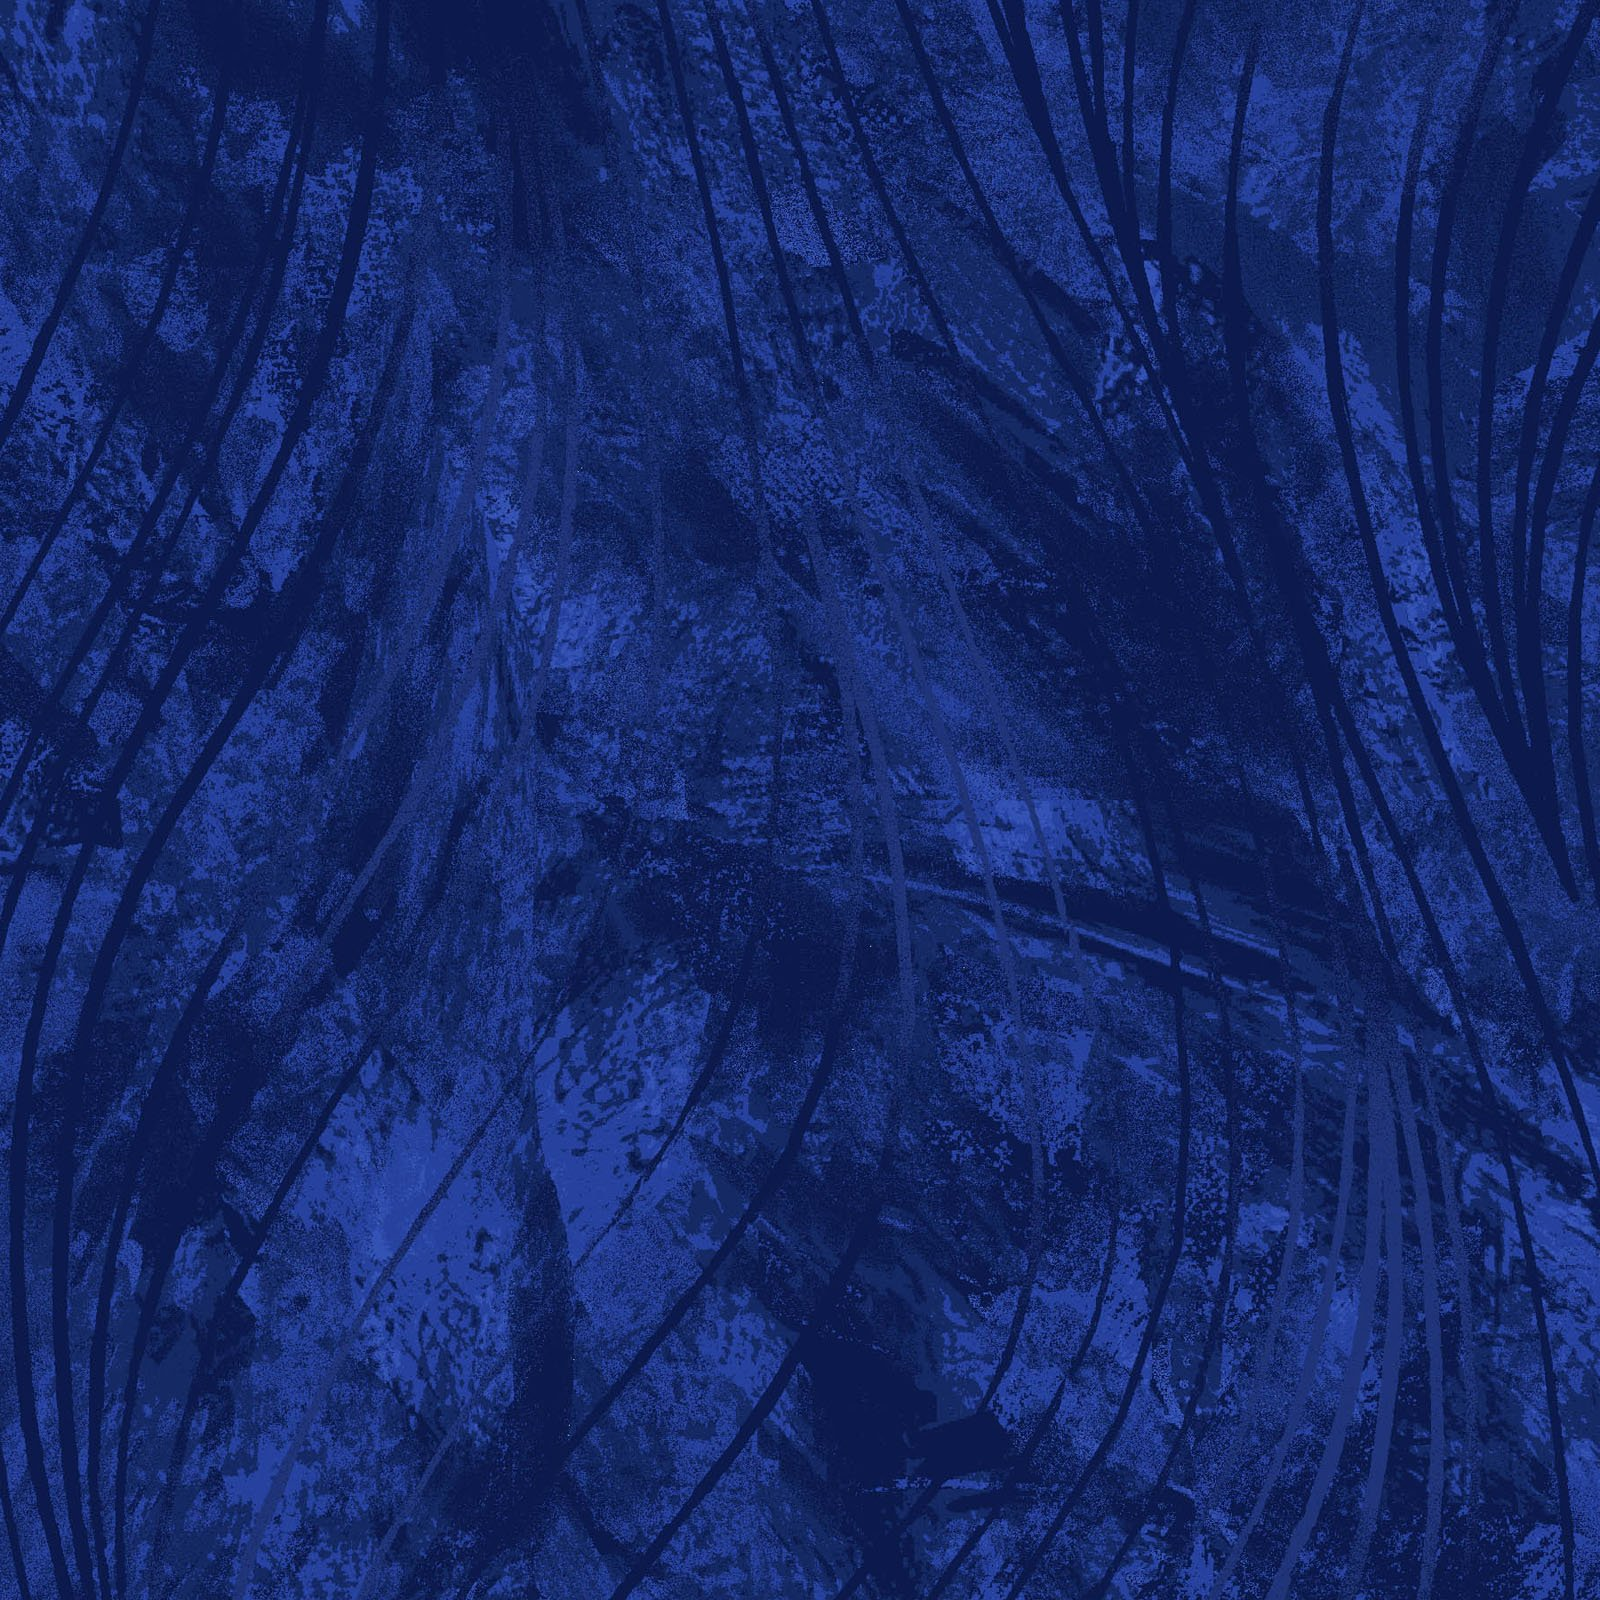 EESC-QB102 N - BEAUTIFUL BACKING 108 BY MAYWOOD GO WITH THE FLOW DK BLUE